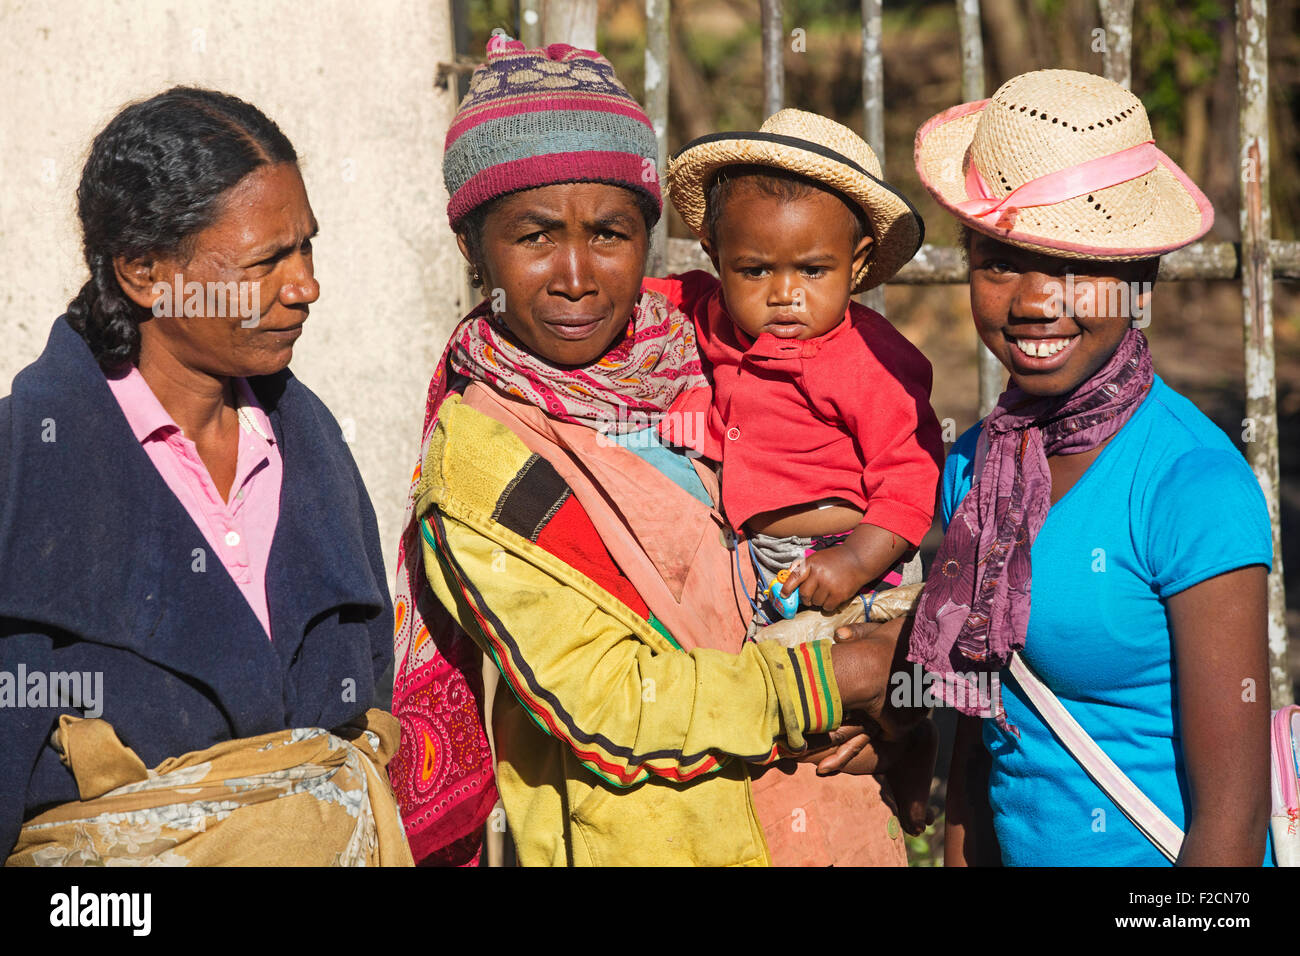 Close up portrait of Malagasy women with toddler, Madagascar, Southeast Africa - Stock Image